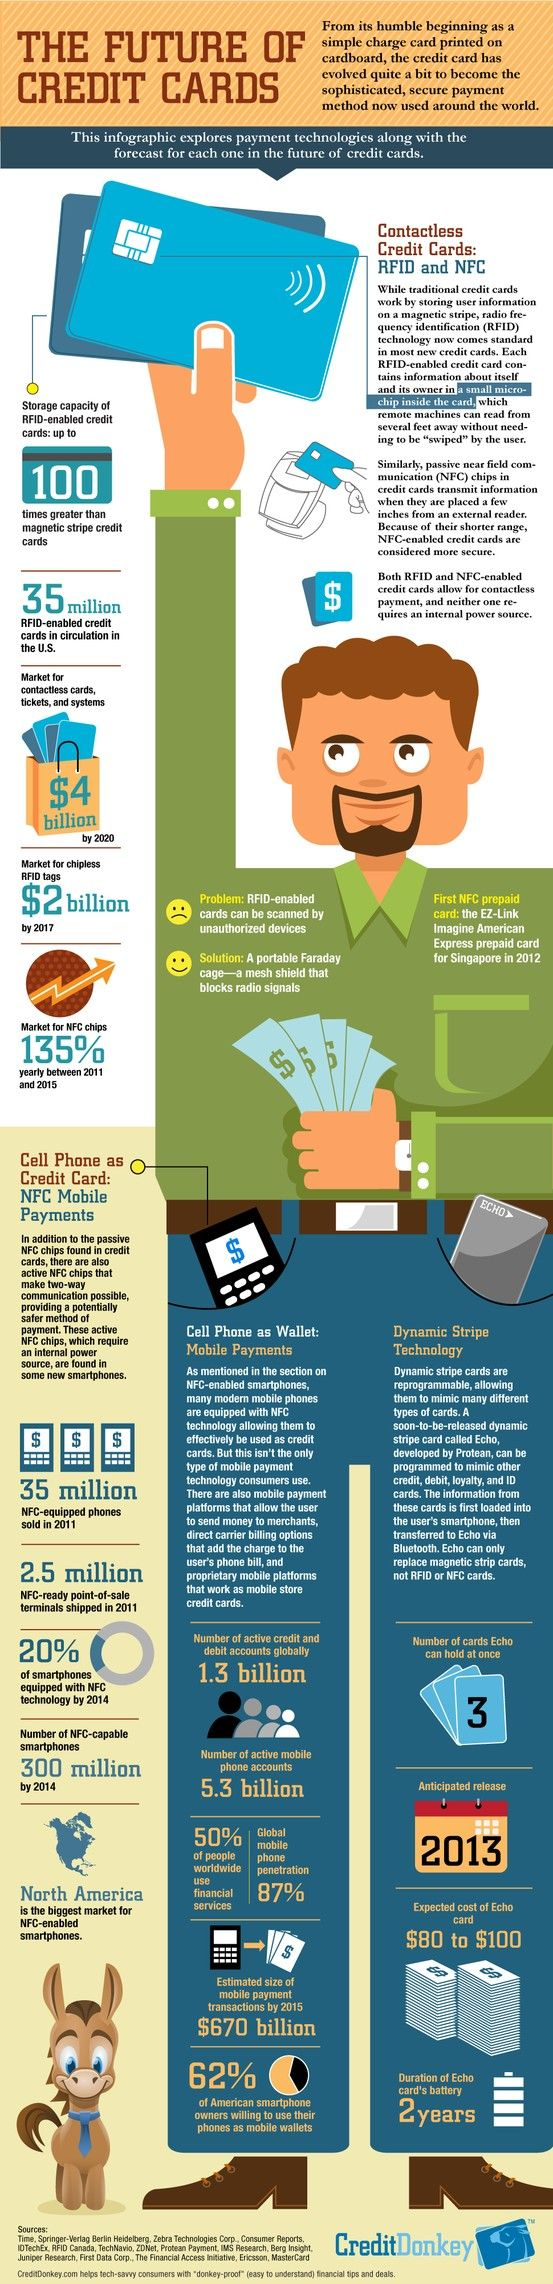 [Infographic] Future of Credit Cards